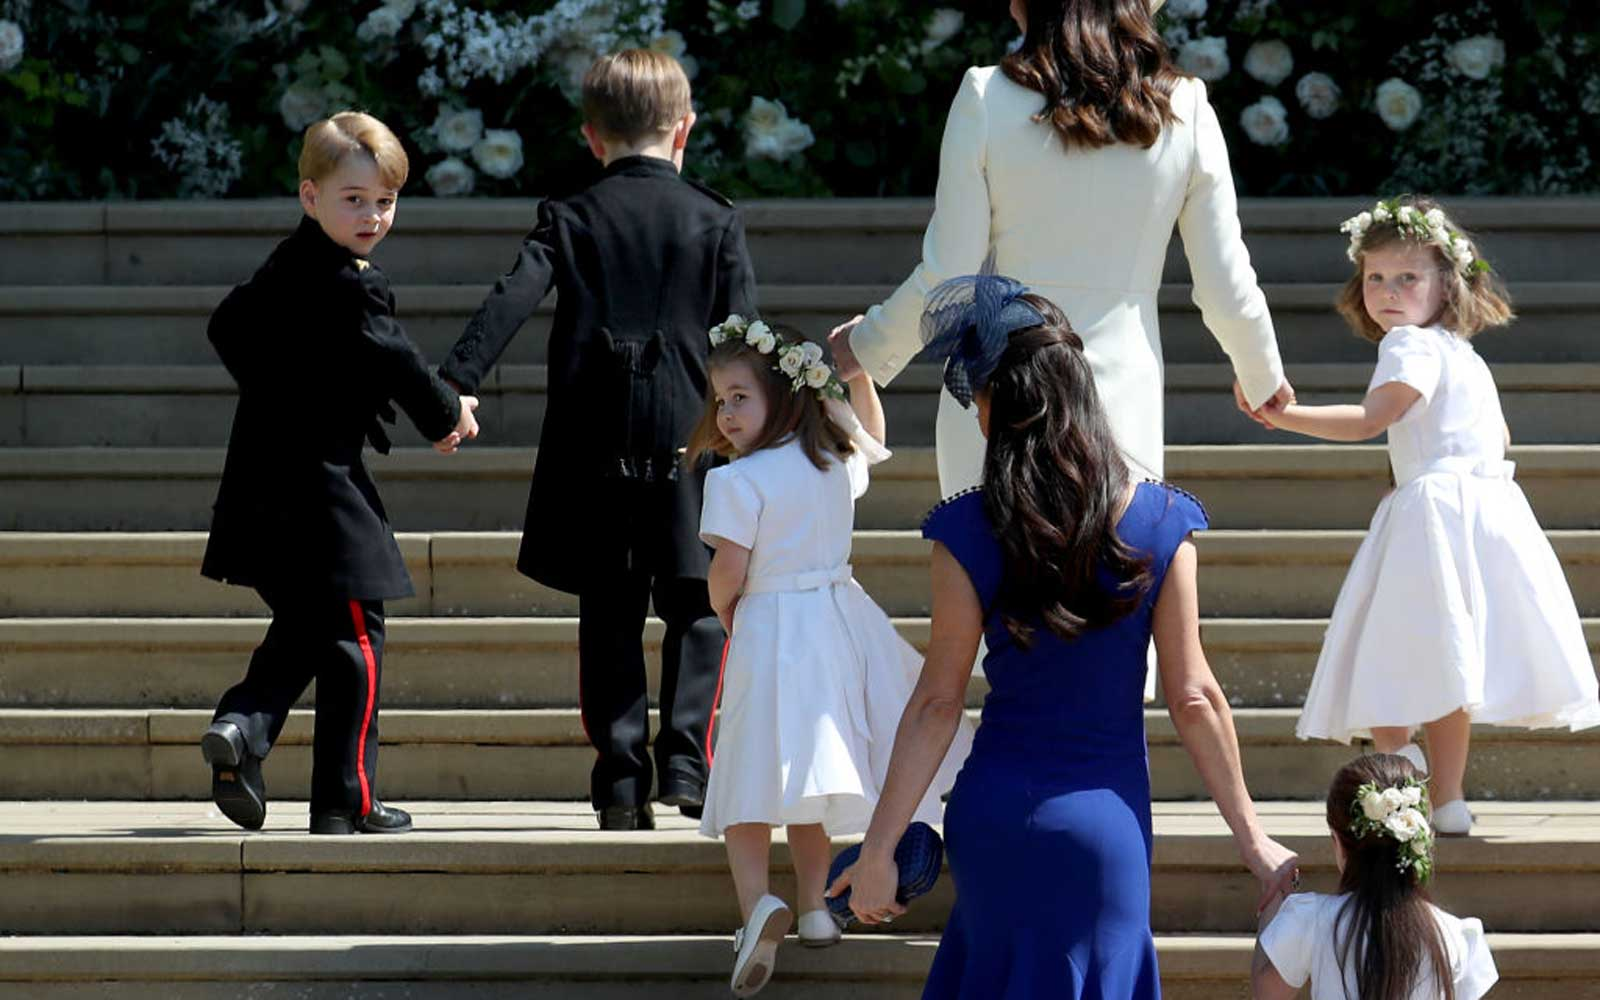 Prince George and Princess Charlotte Will Be Reprising Their Royal Wedding Roles in October (Video)